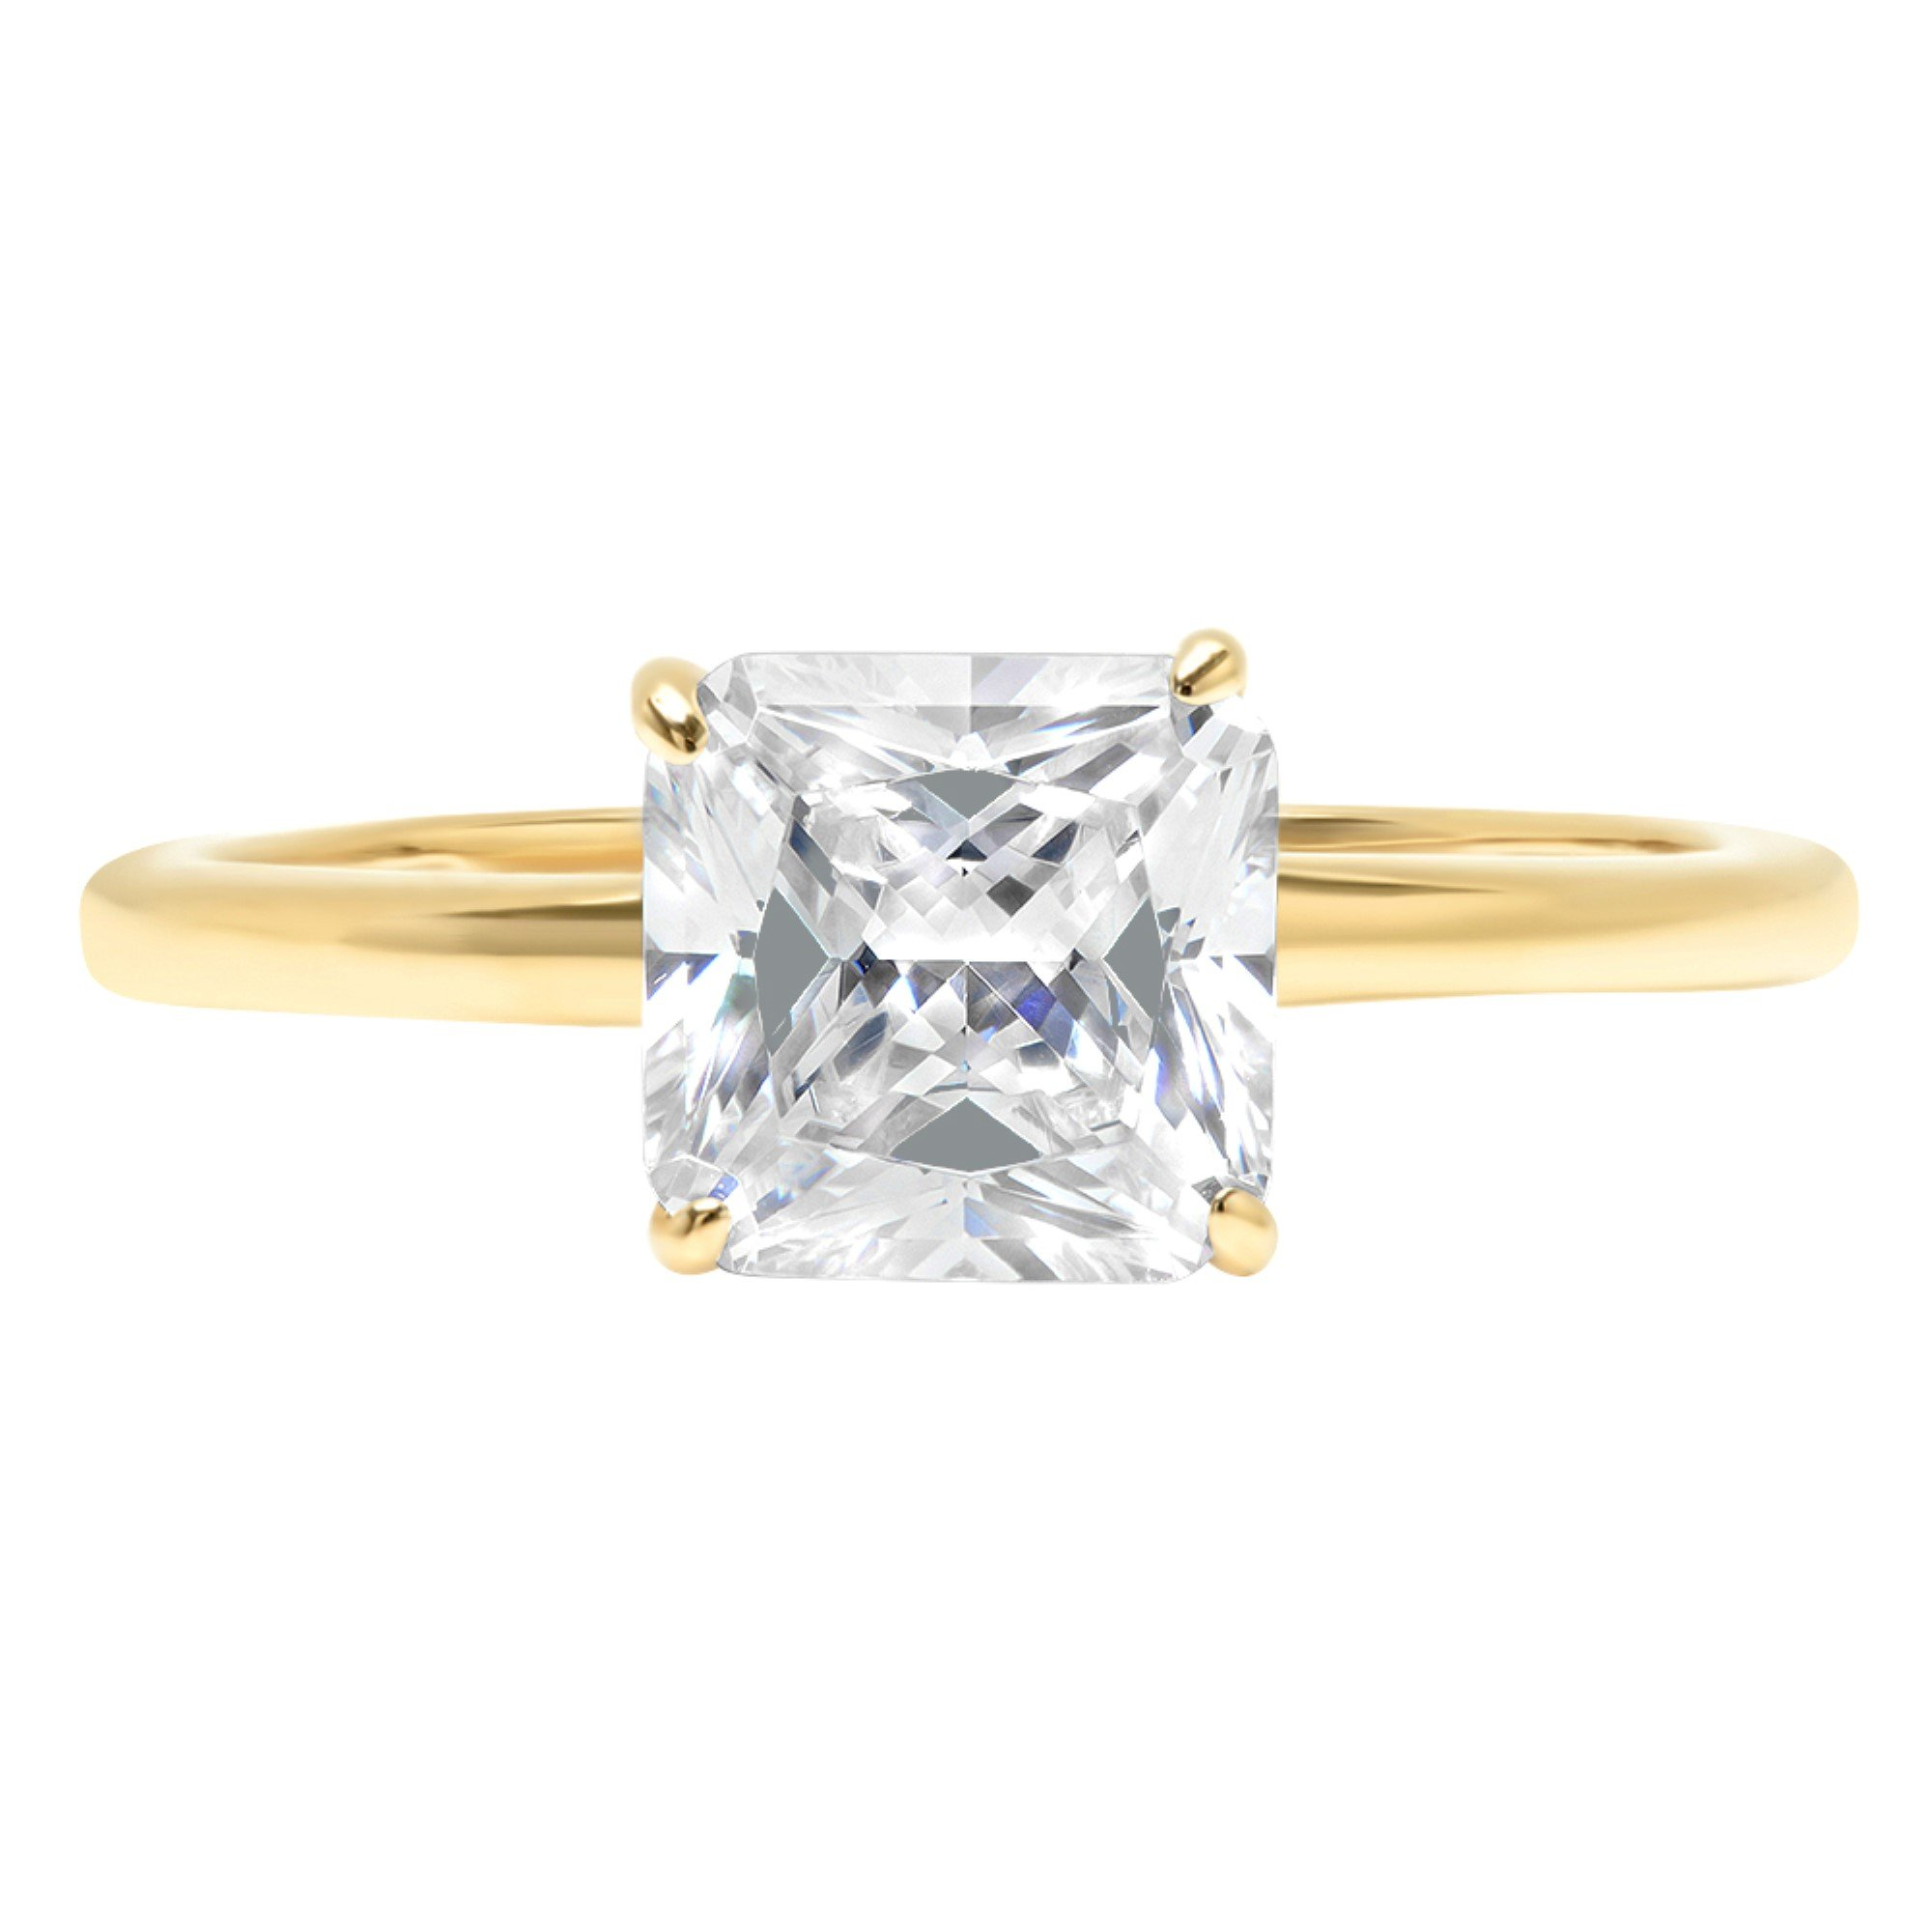 1.0 ct Brilliant Asscher Cut Solitaire Highest Quality Lab Created White Sapphire Ideal VVS1 D 4-Prong Engagement Wedding Bridal Promise Anniversary Ring Solid Real 14k Yellow Gold for Women